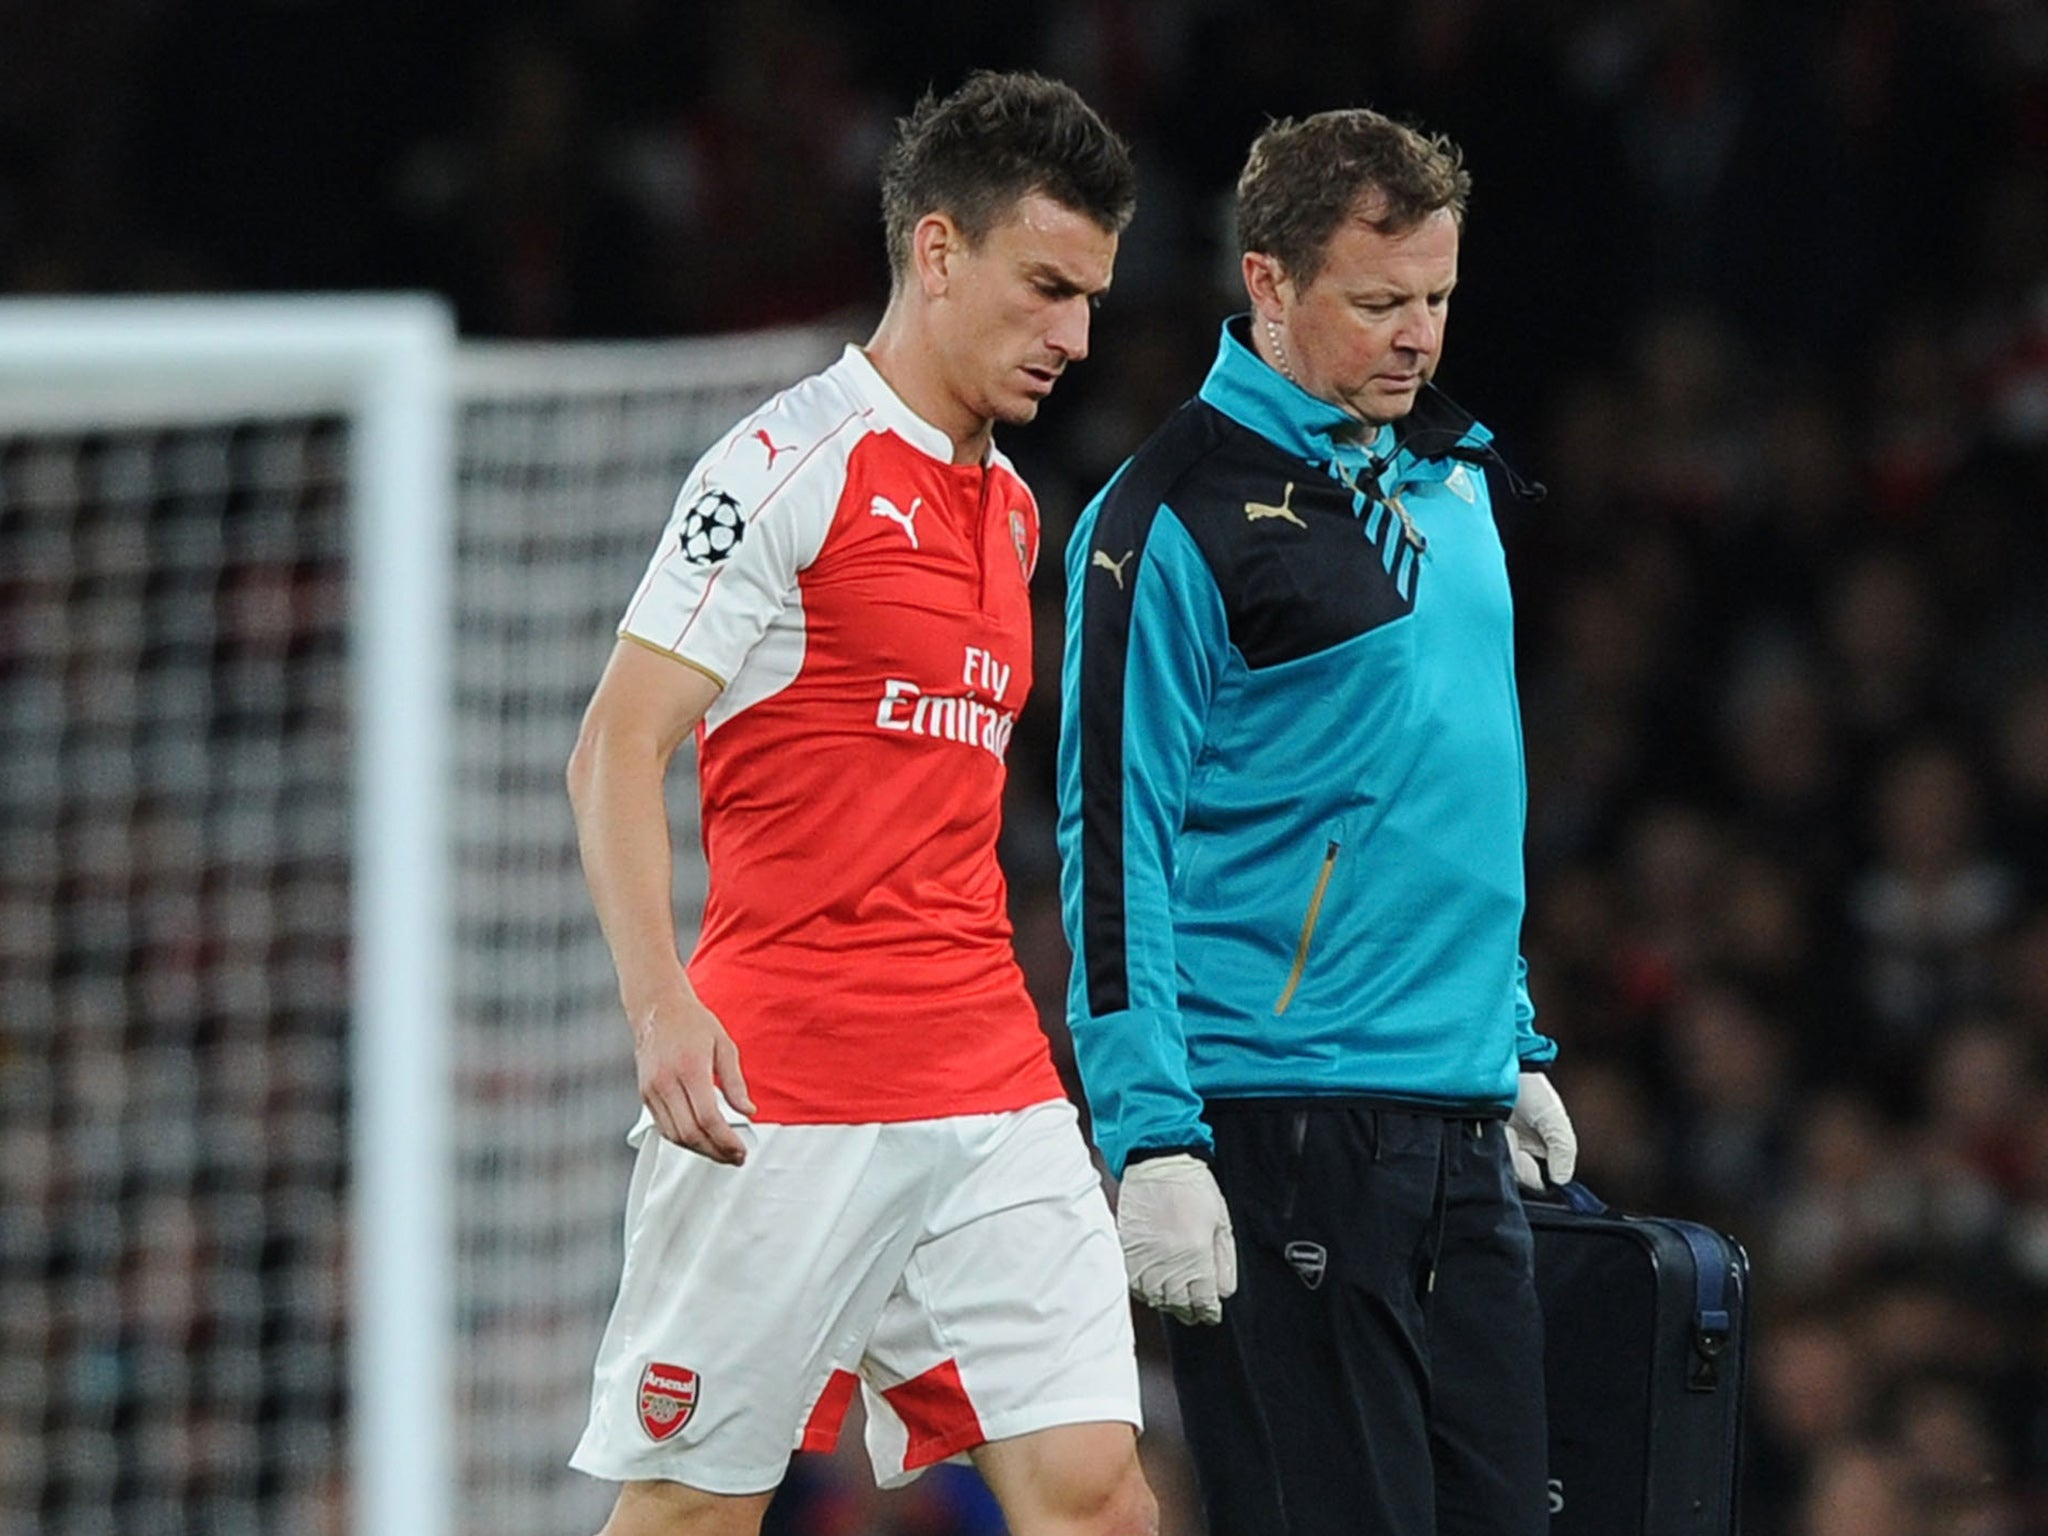 Arsenal injury news: Laurent Koscielny, Mikel Arteta and Mathieu Flamini all out for Manchester United visit, Francis Coquelin fit